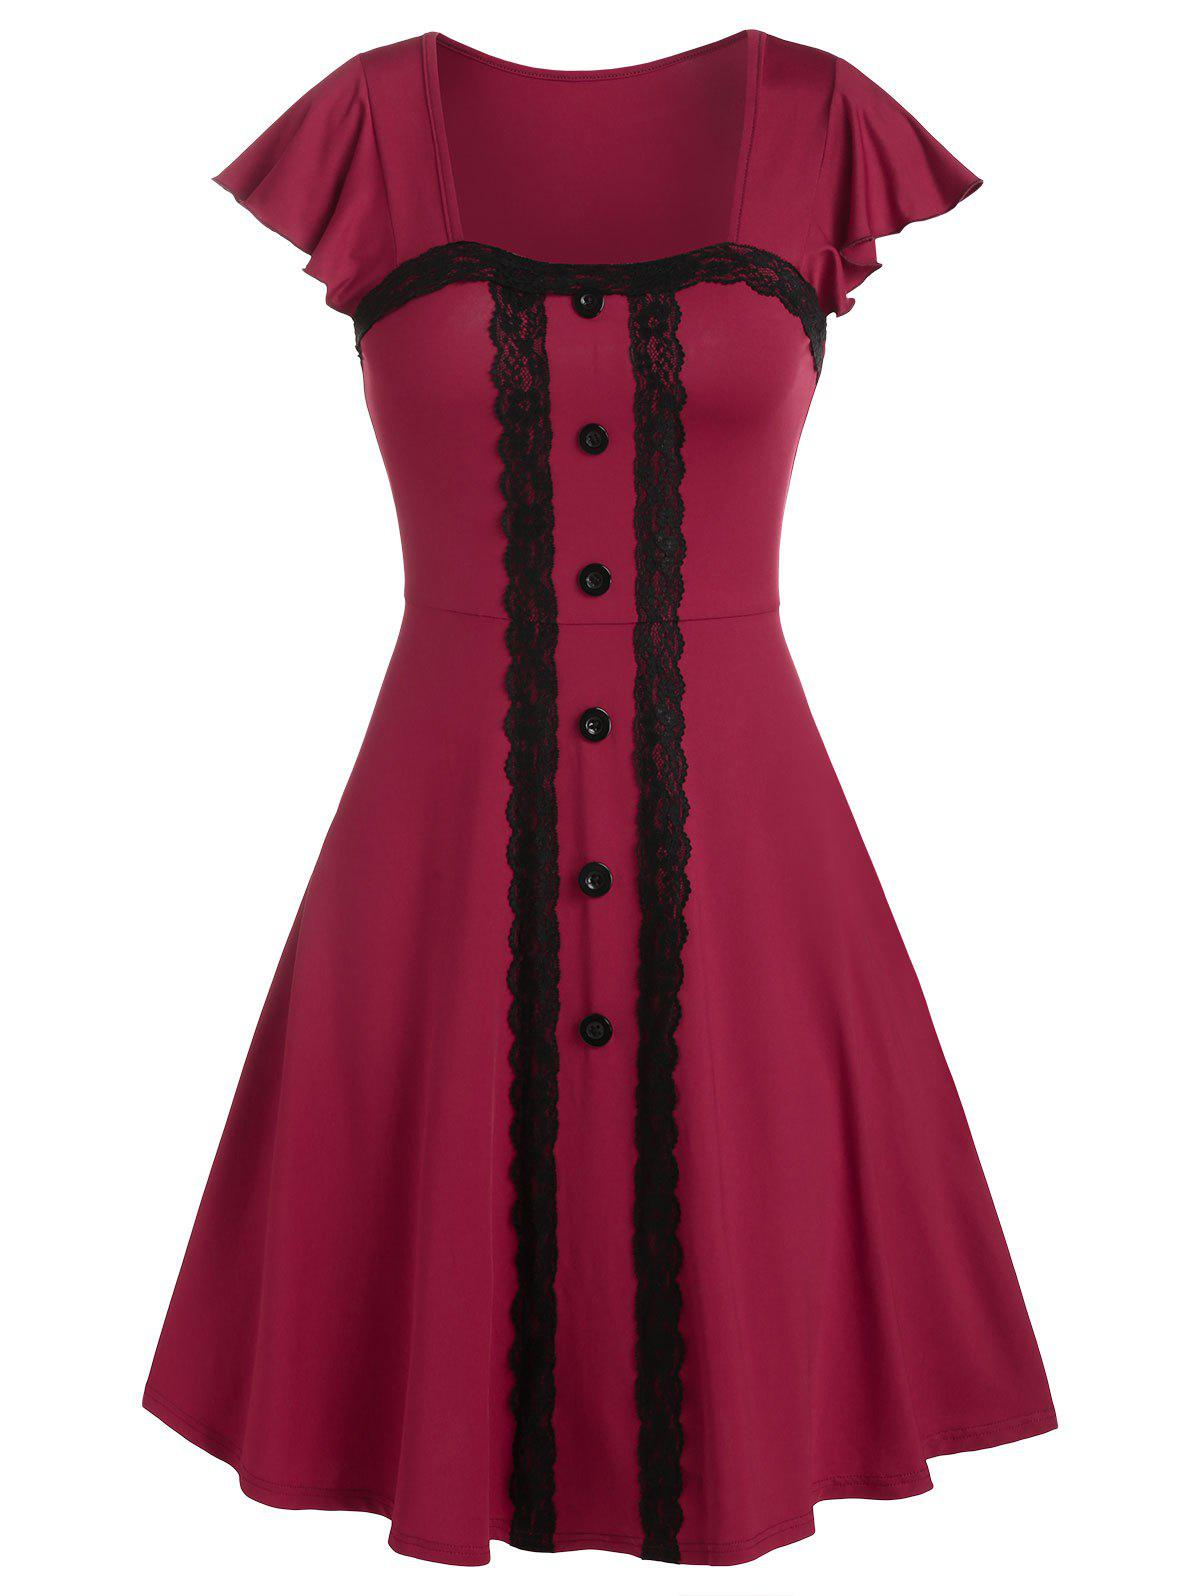 Square Collar Flare Sleeve Mock Button Mini Vintage Dress - RED WINE 3XL